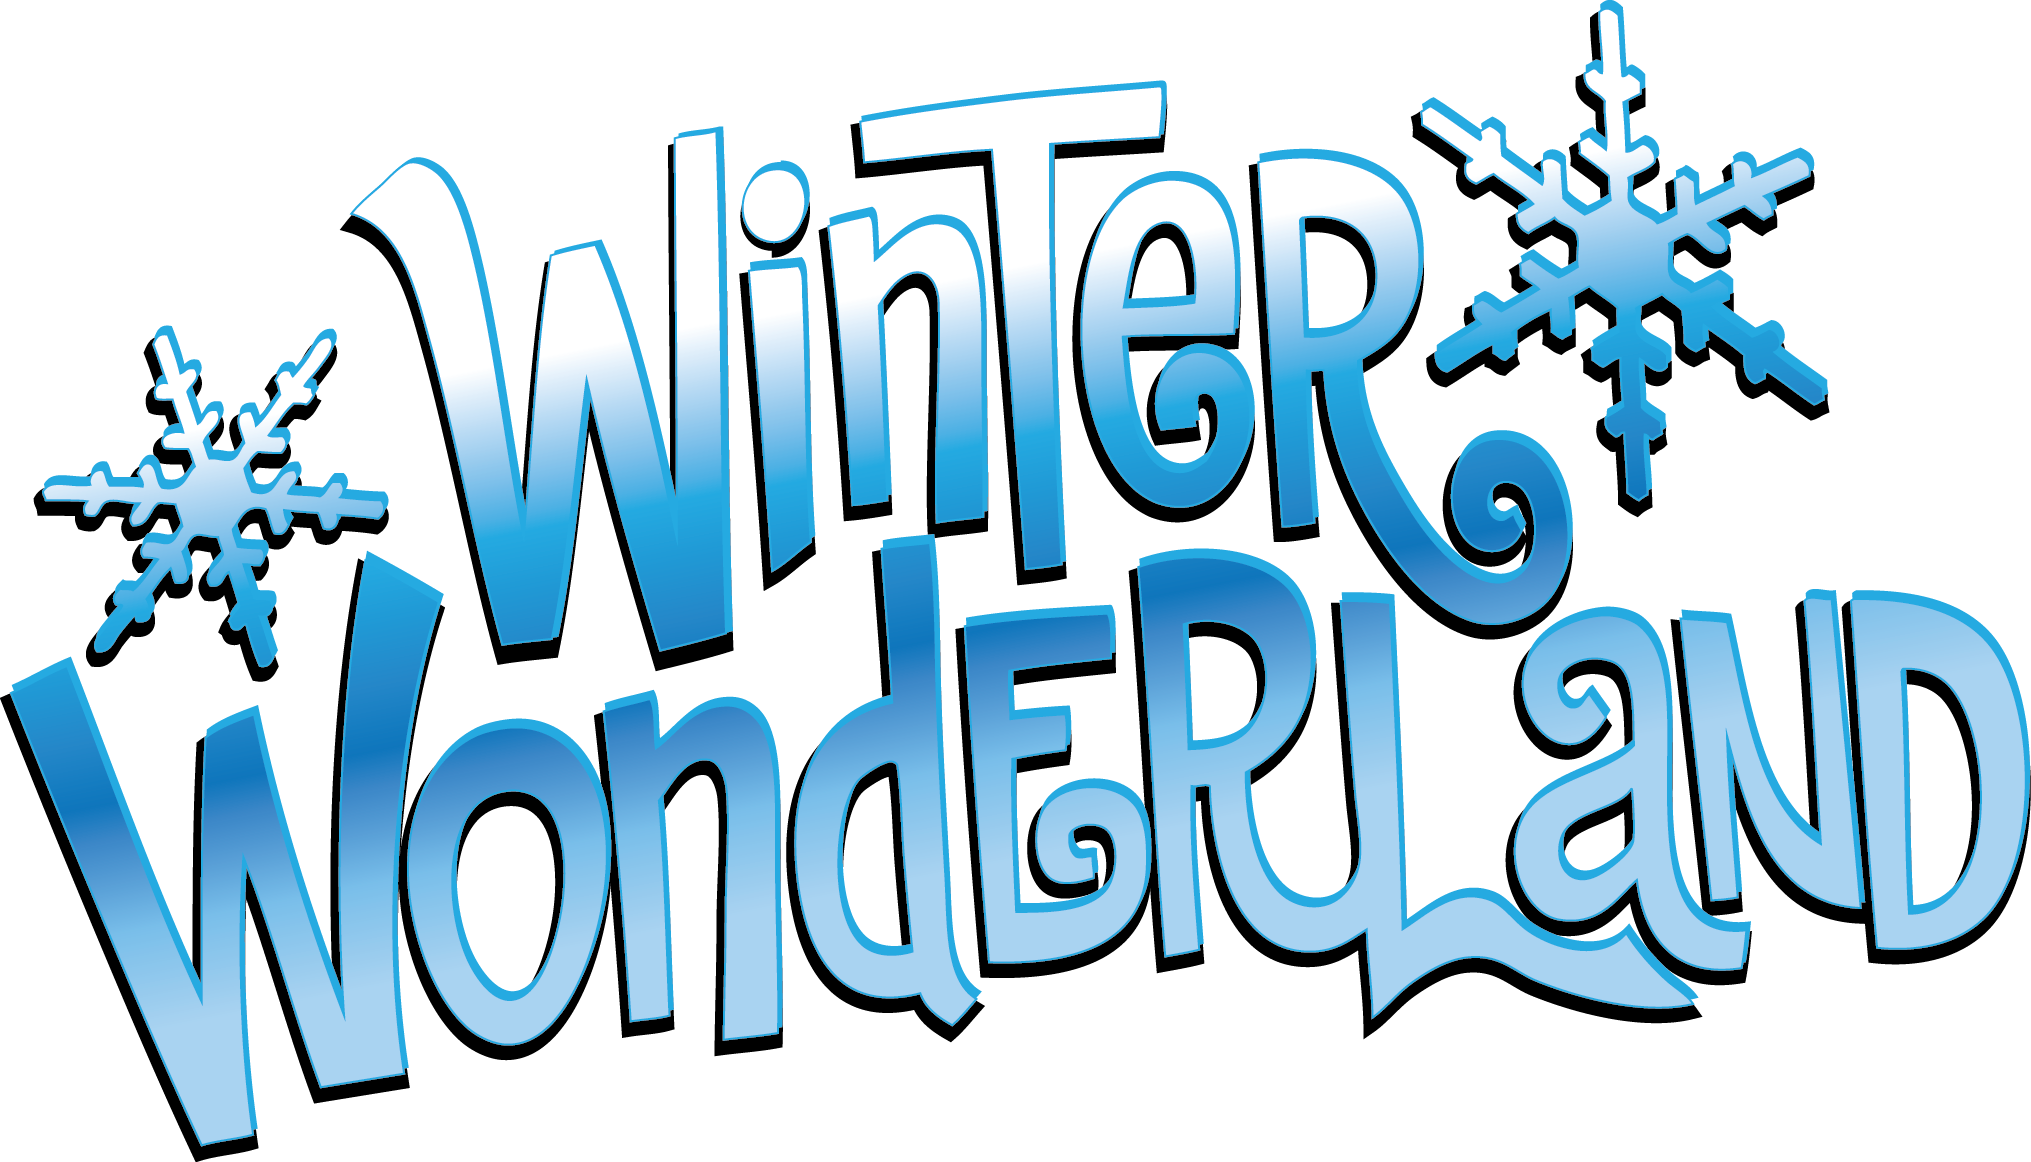 winter wonderland clipart at getdrawings com free for personal use rh getdrawings com winter wonderland clip art free winter wonderland clipart black and white